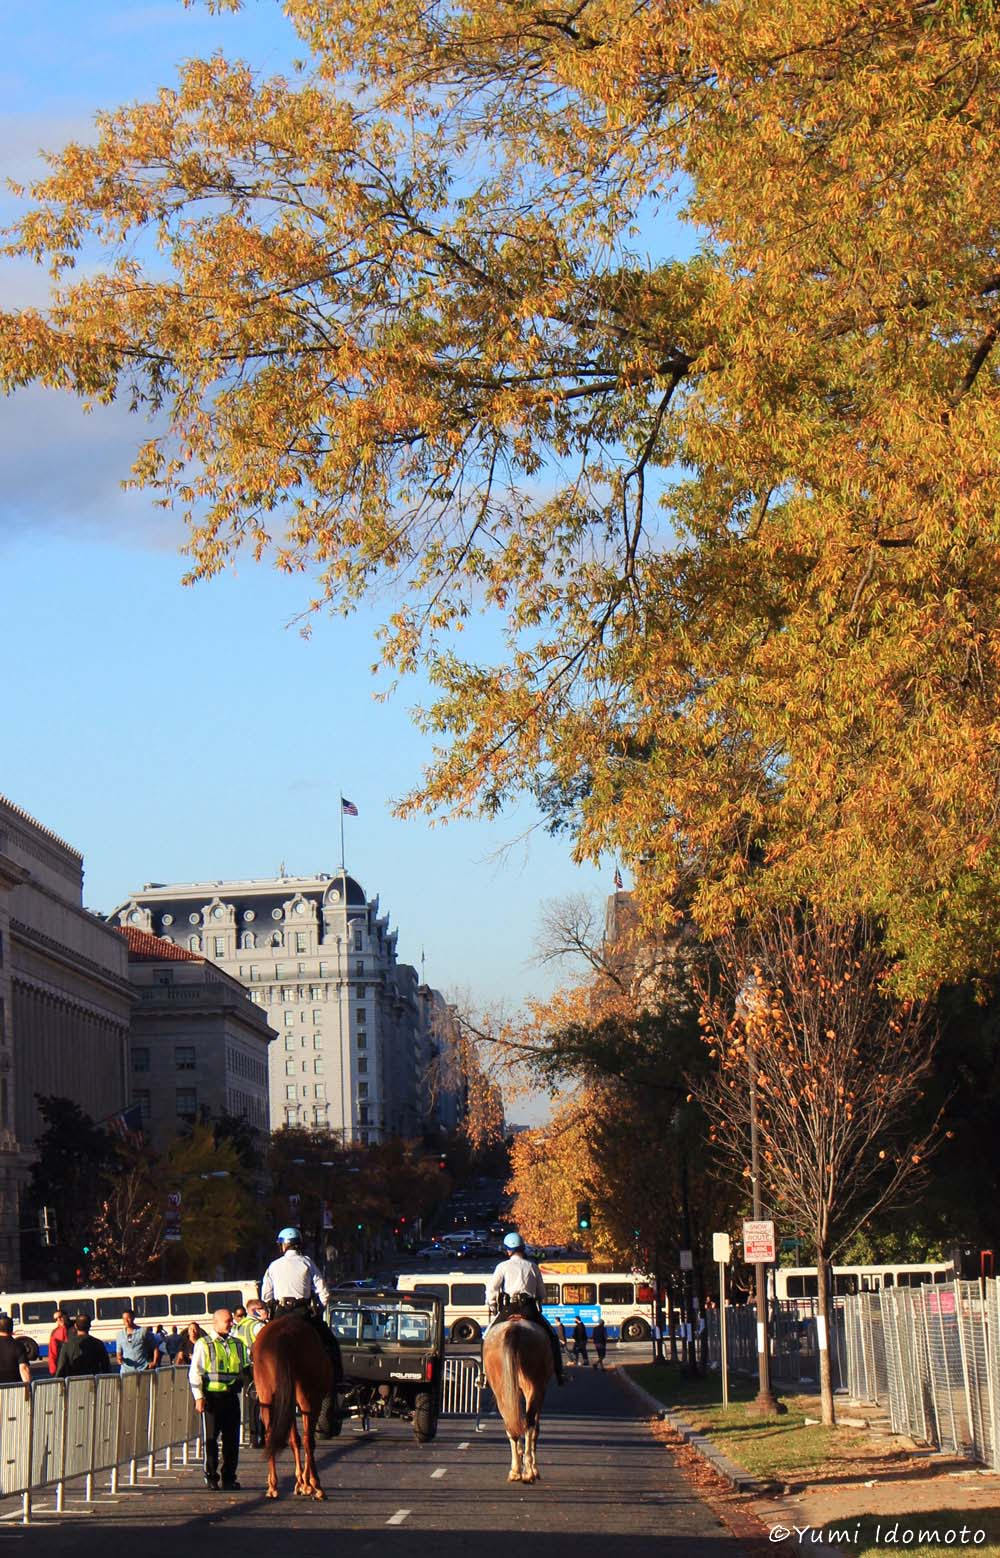 autumn_leaves_in_dc-yumiid.com-3